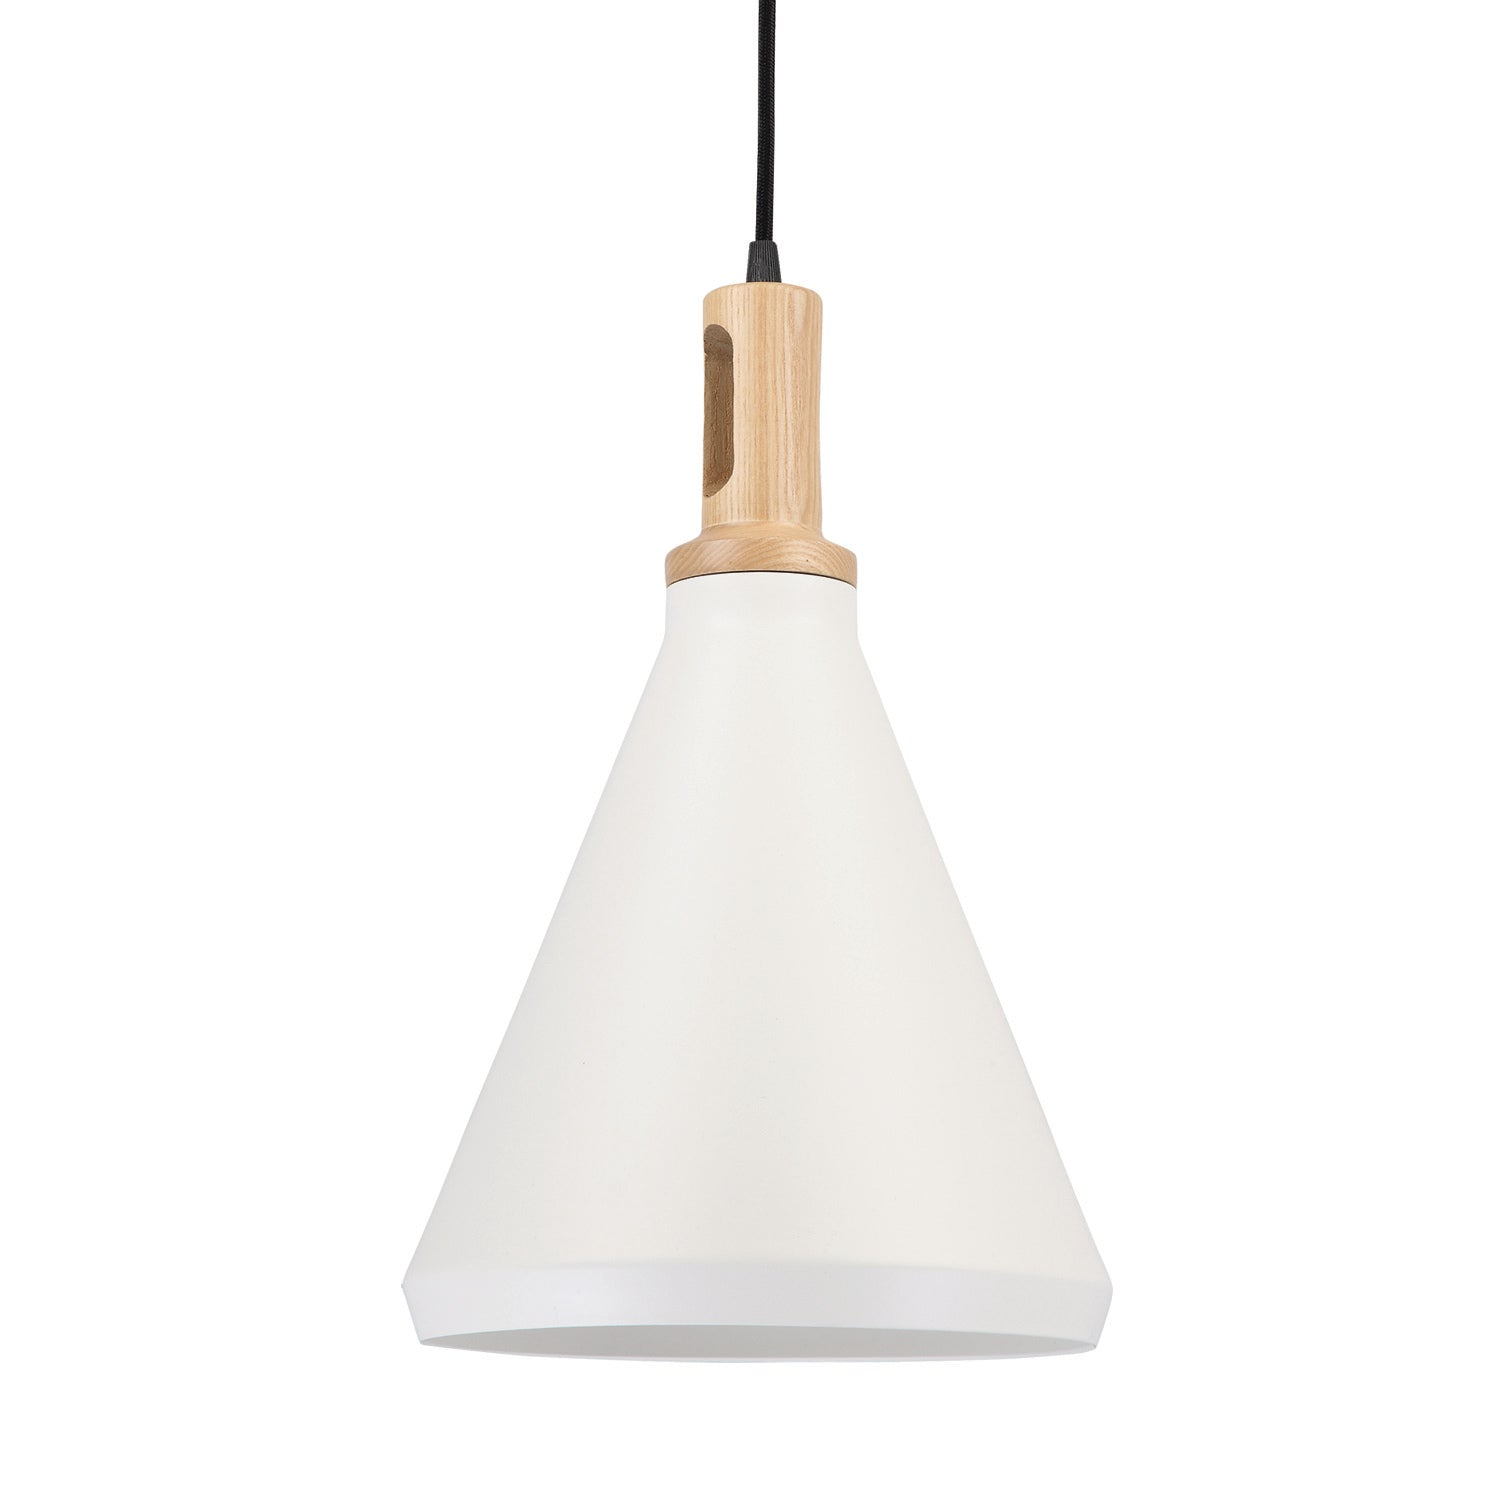 Pimlico Thin Ceiling Light - David Malik & Son